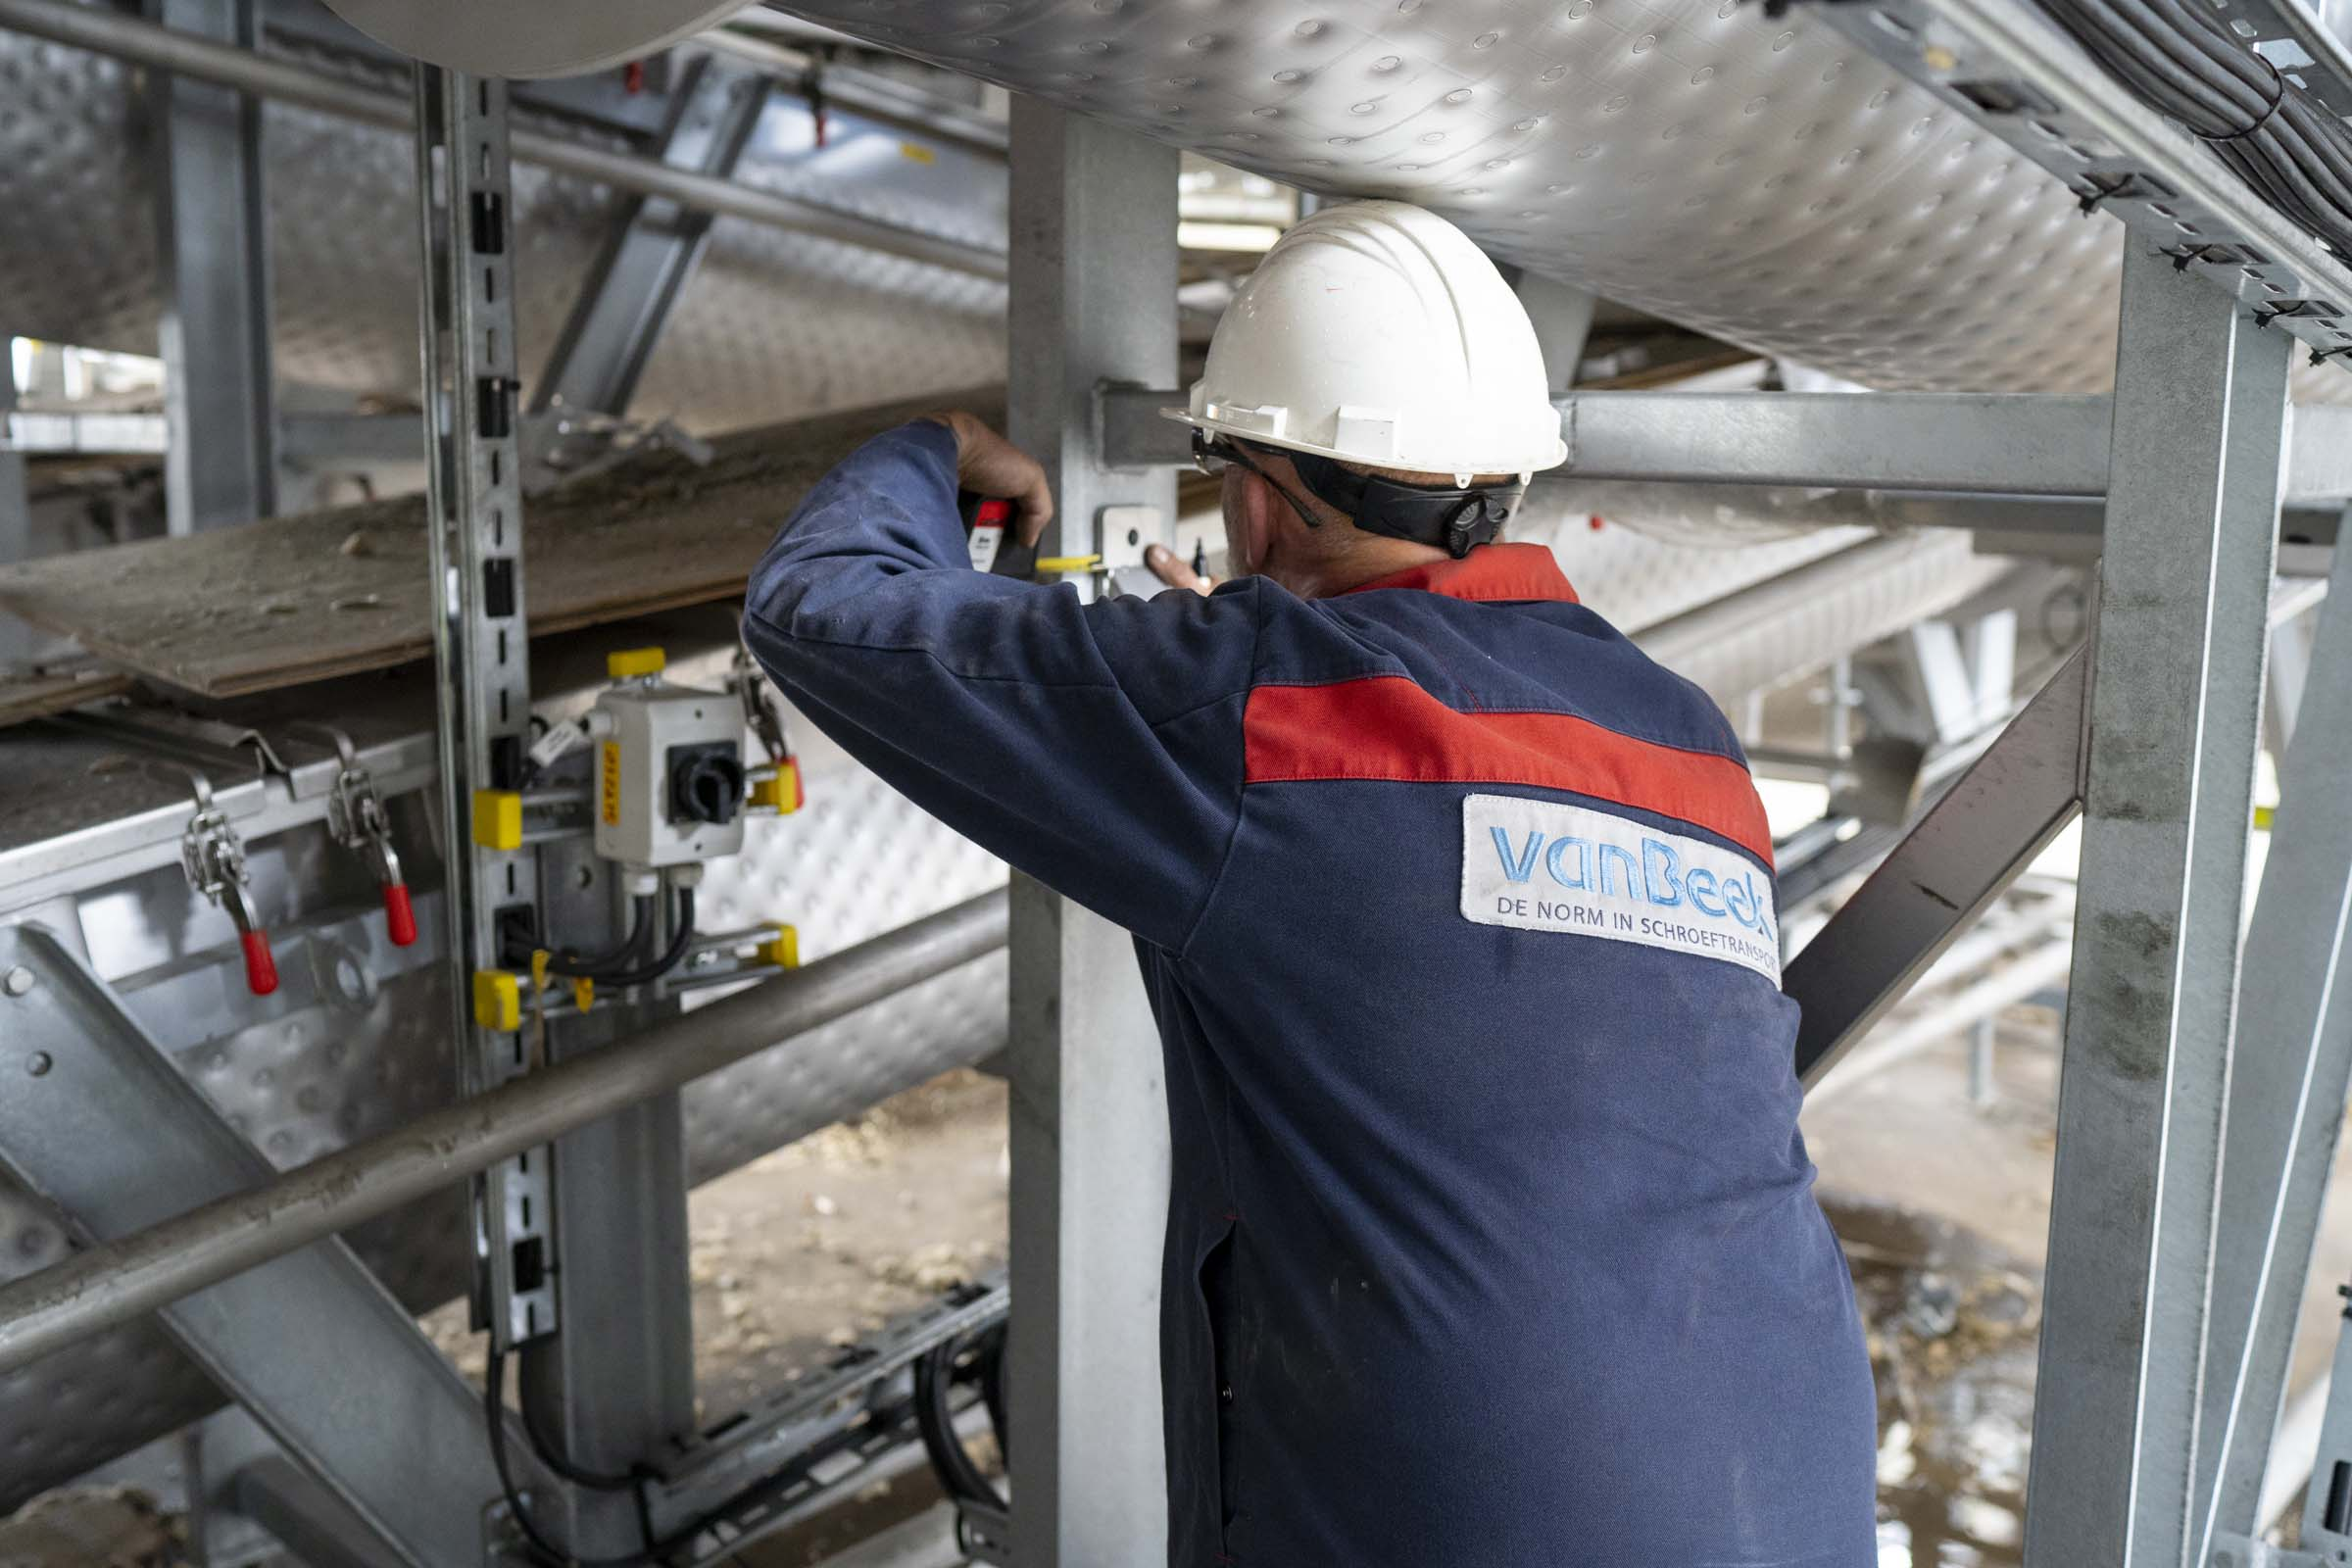 VCA certificate makes Van Beek employees more aware of health and safety risks